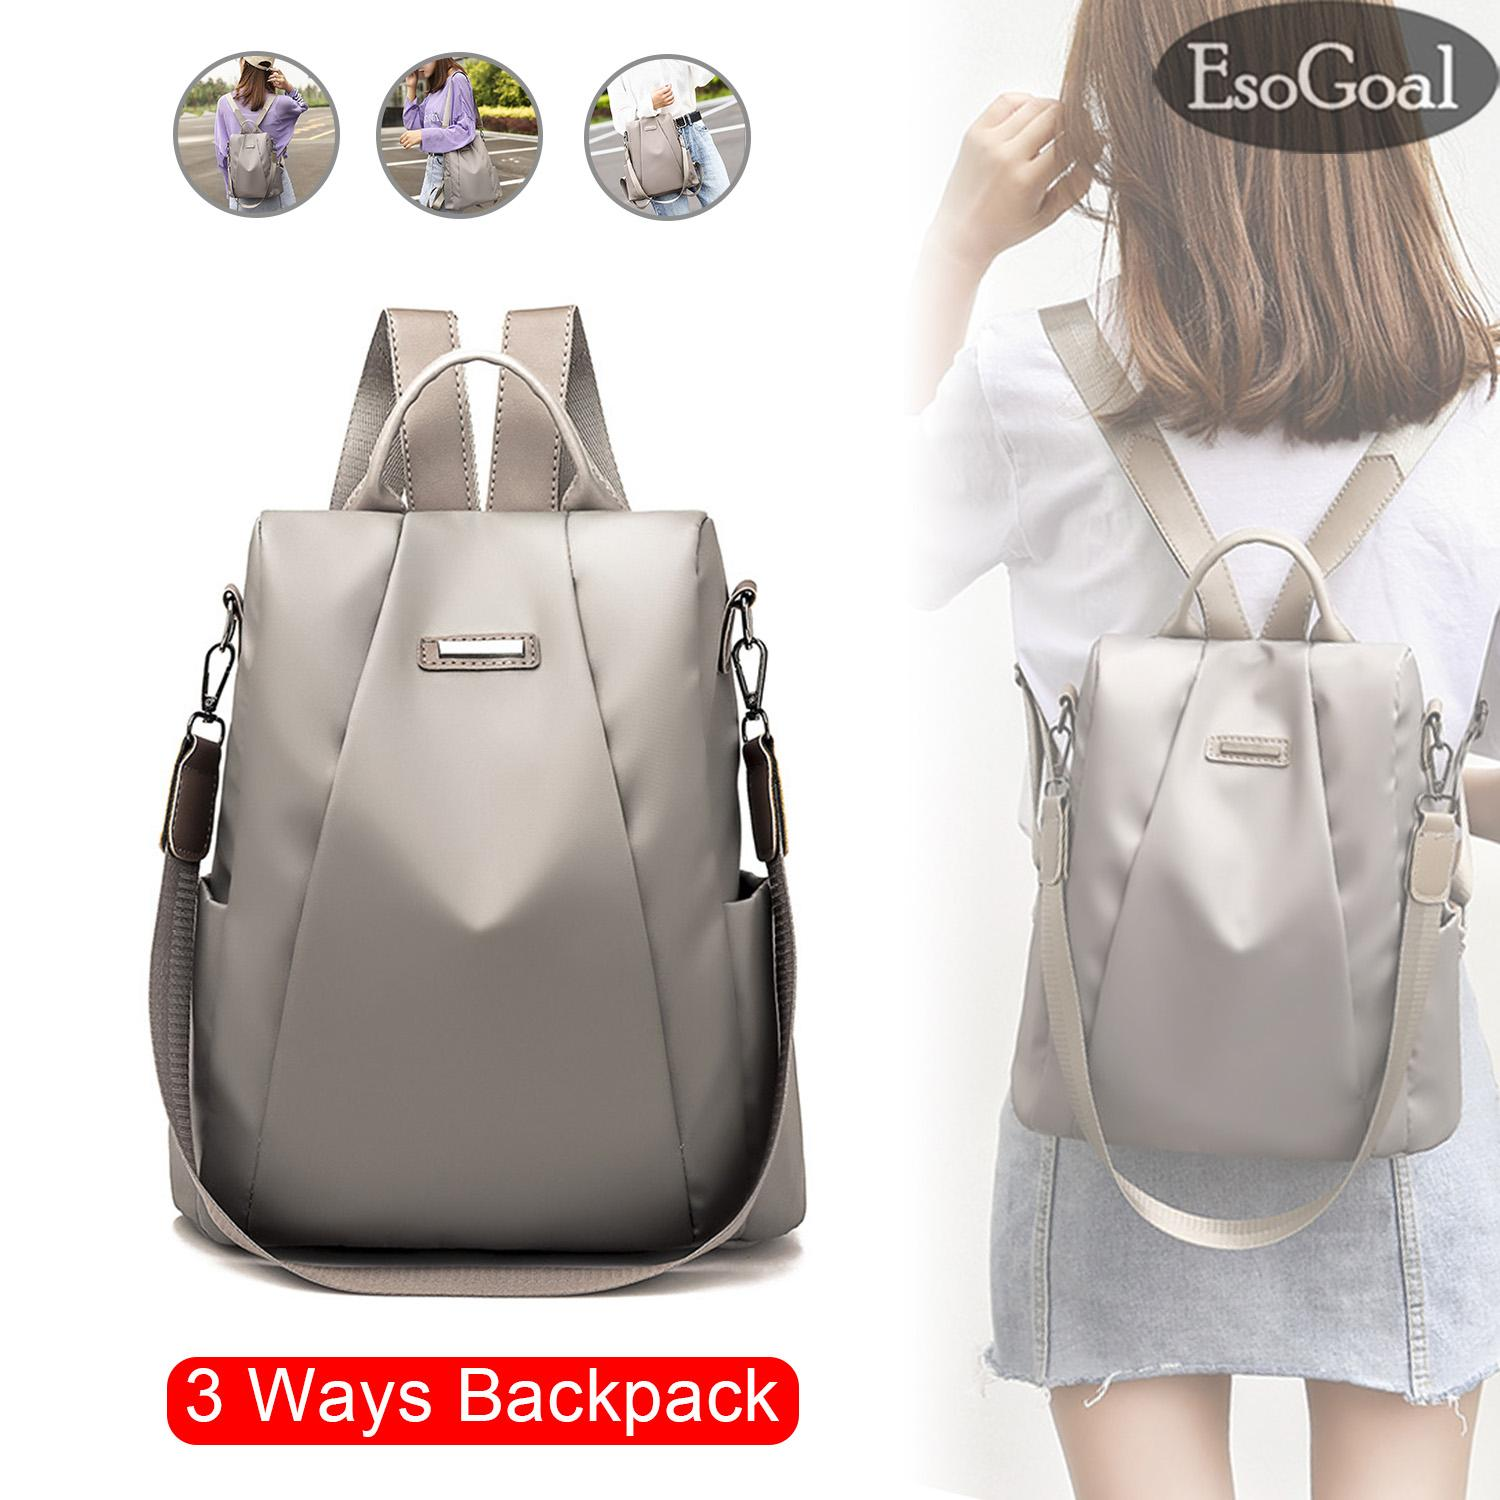 8776f2874792 EsoGoal Fashion Women Backpack Shoulder Bag Korea Style Anti-theft Backpack  College School Bag For Students Teenagers Ladies Girls Back Pack Laptop ...